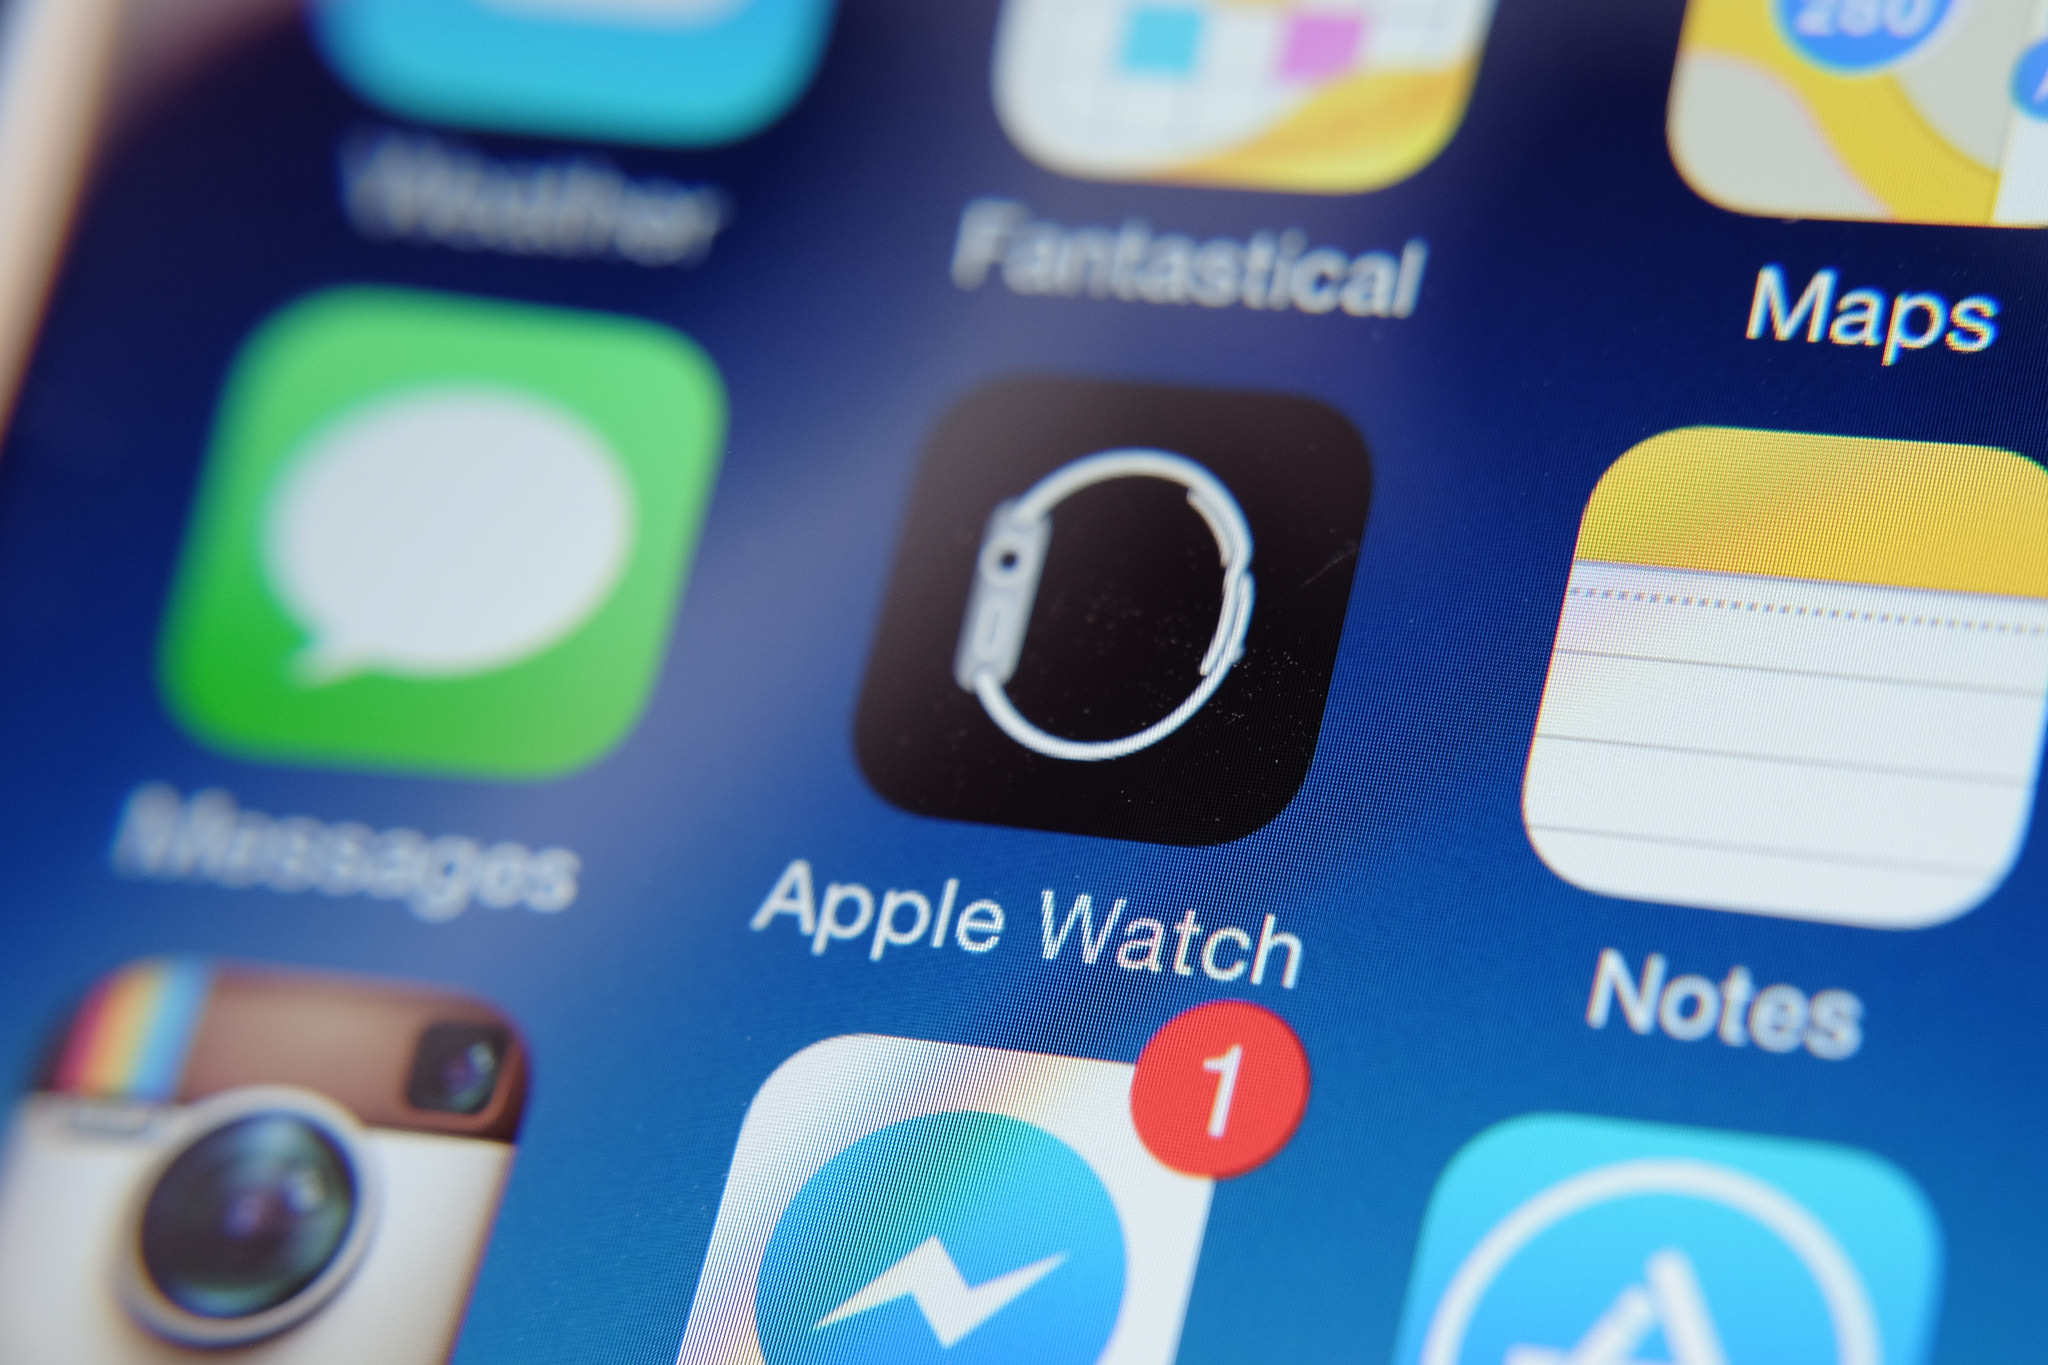 Soon enough, you'll be able to sync your Apple Watch with your iPhone to make some amazing magic happen ... photo by CC user janitors on flickr